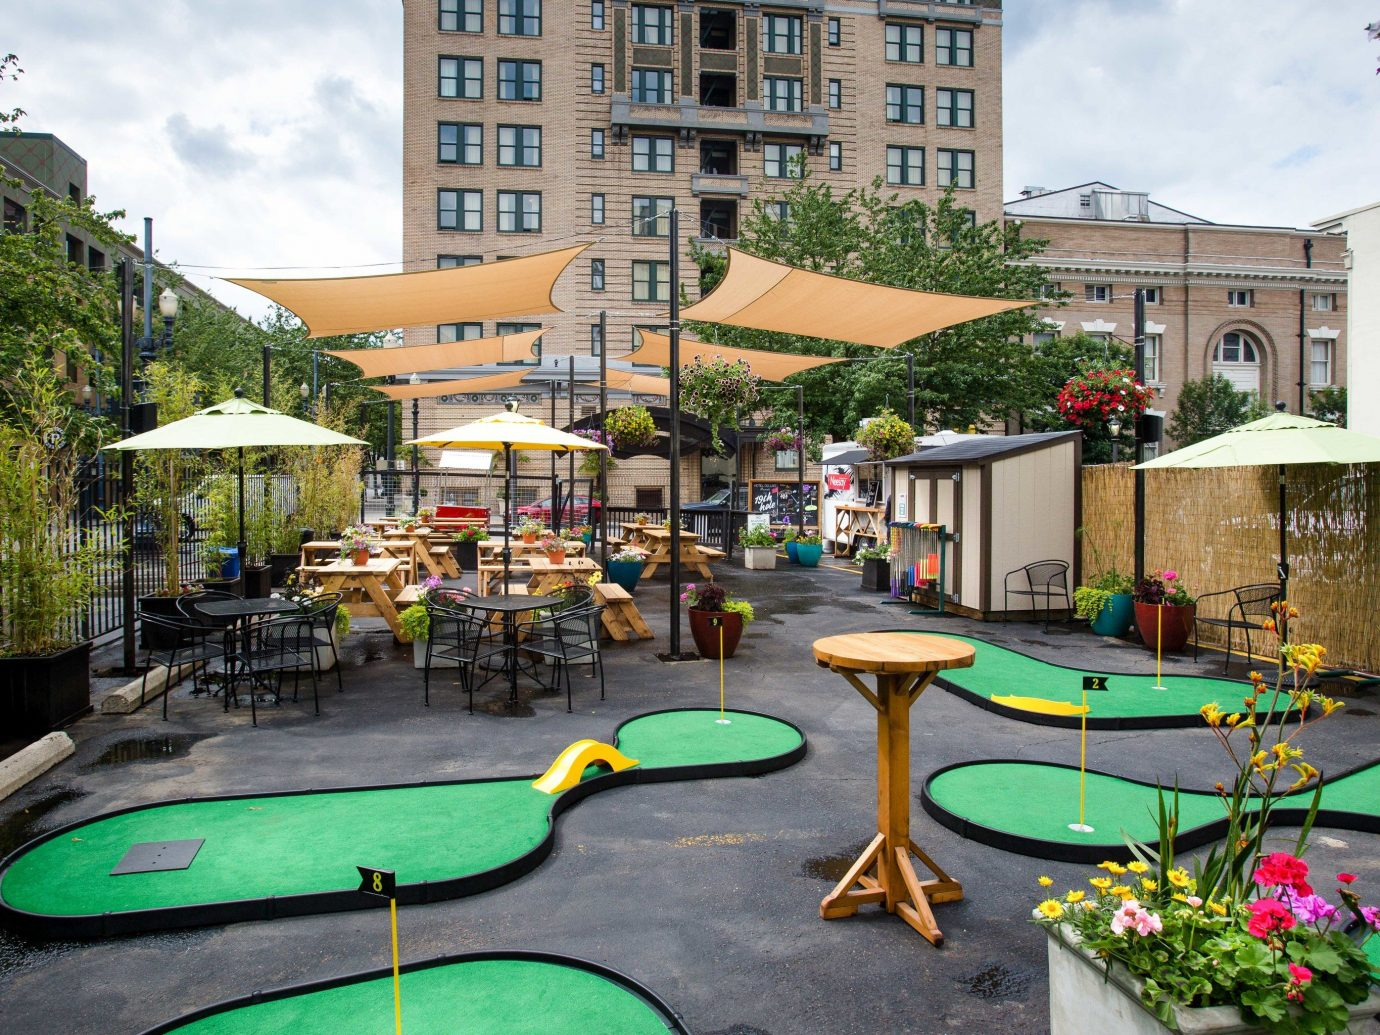 Boutique Hotels Hotels Luxury Travel outdoor property leisure recreation miniature golf condominium real estate Resort estate grass